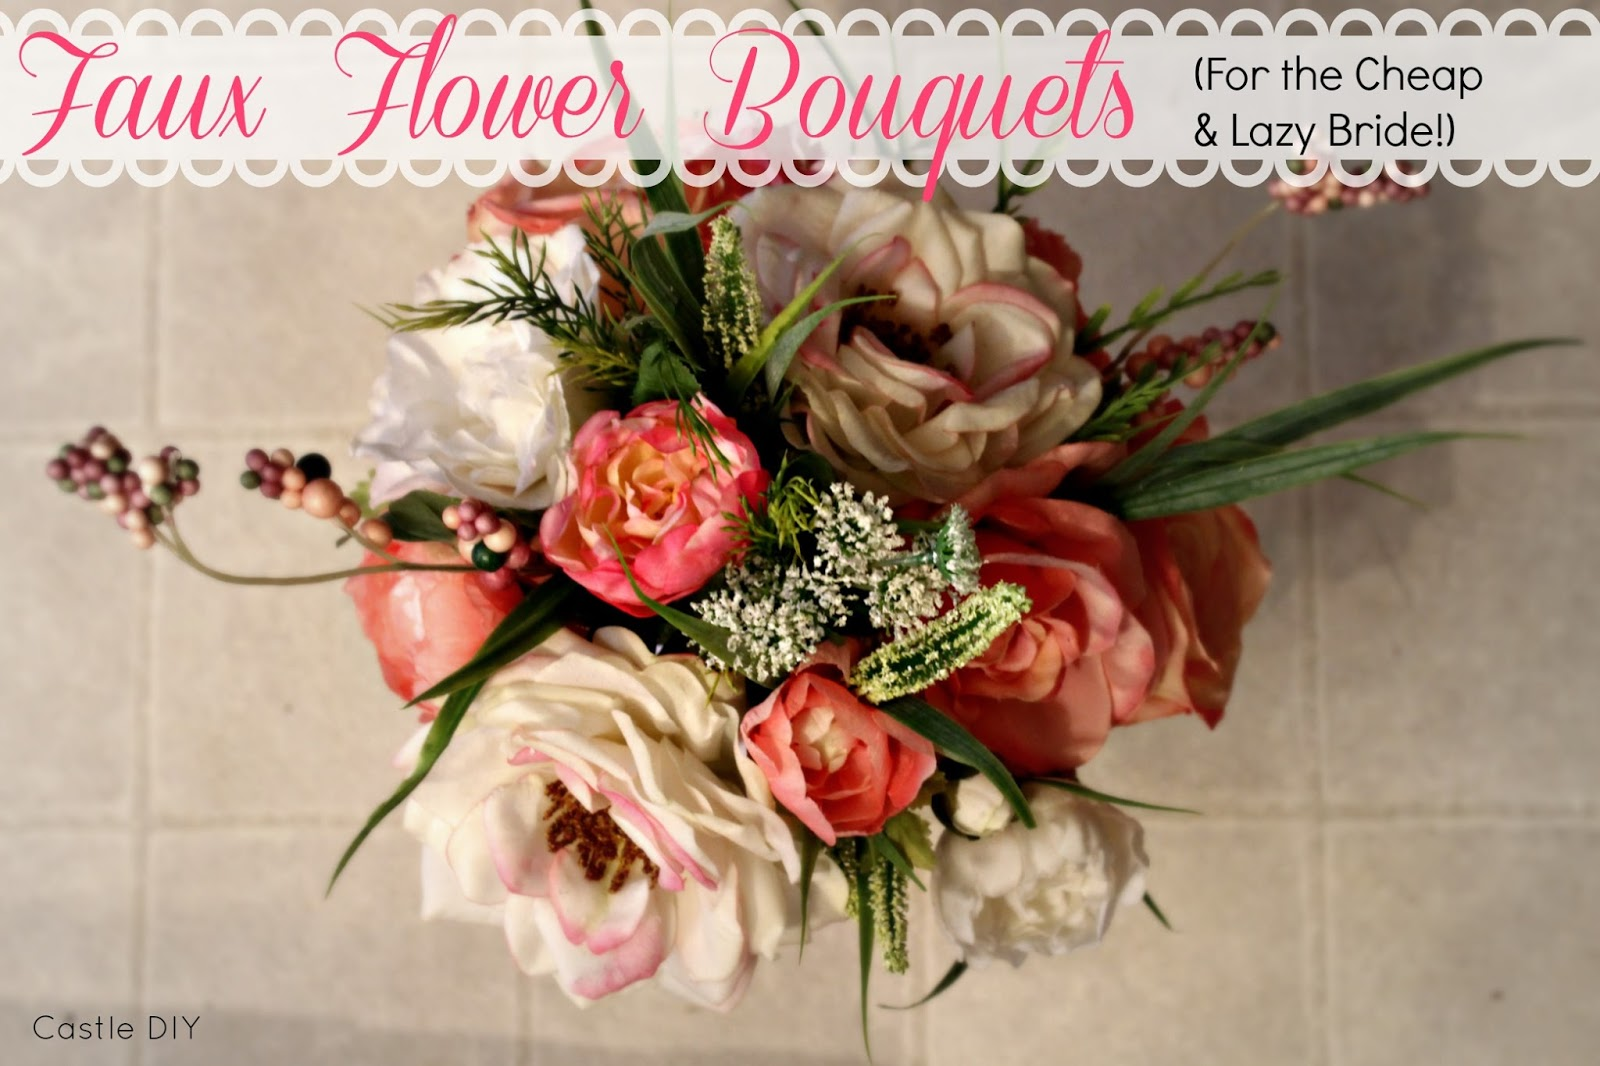 Castle Diy Faux Flower Bouquet For The Cheap Lazy Bride